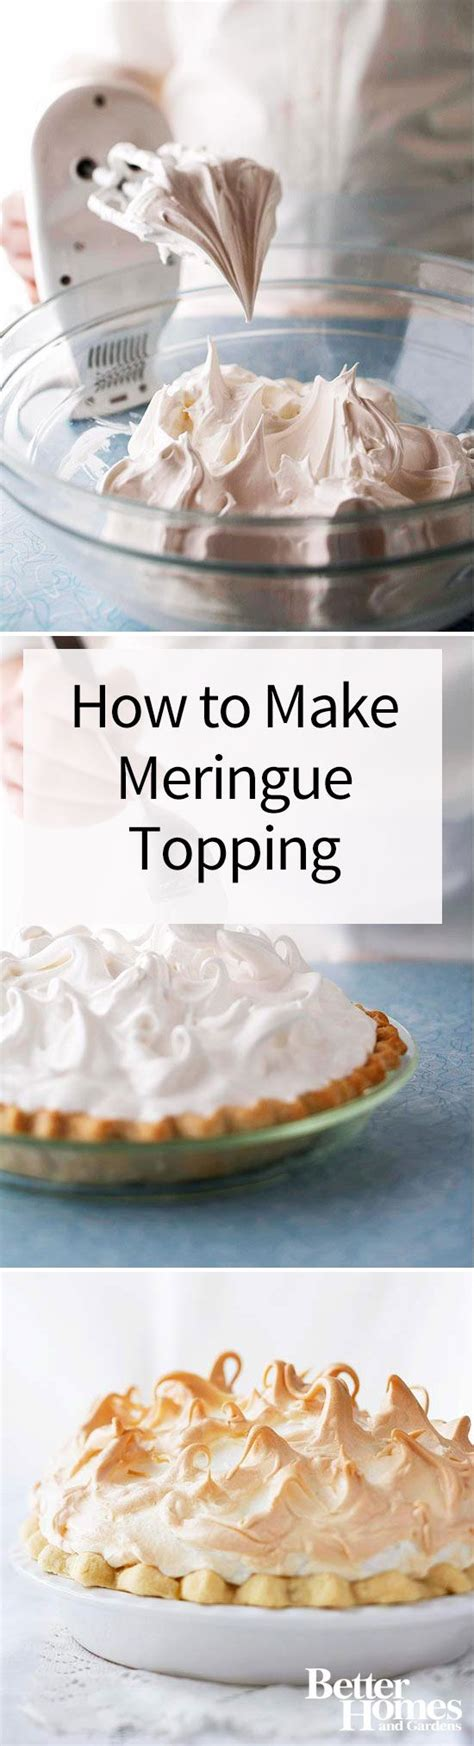 how to keep meringue from weeping best 20 foot in mouth ideas on pinterest